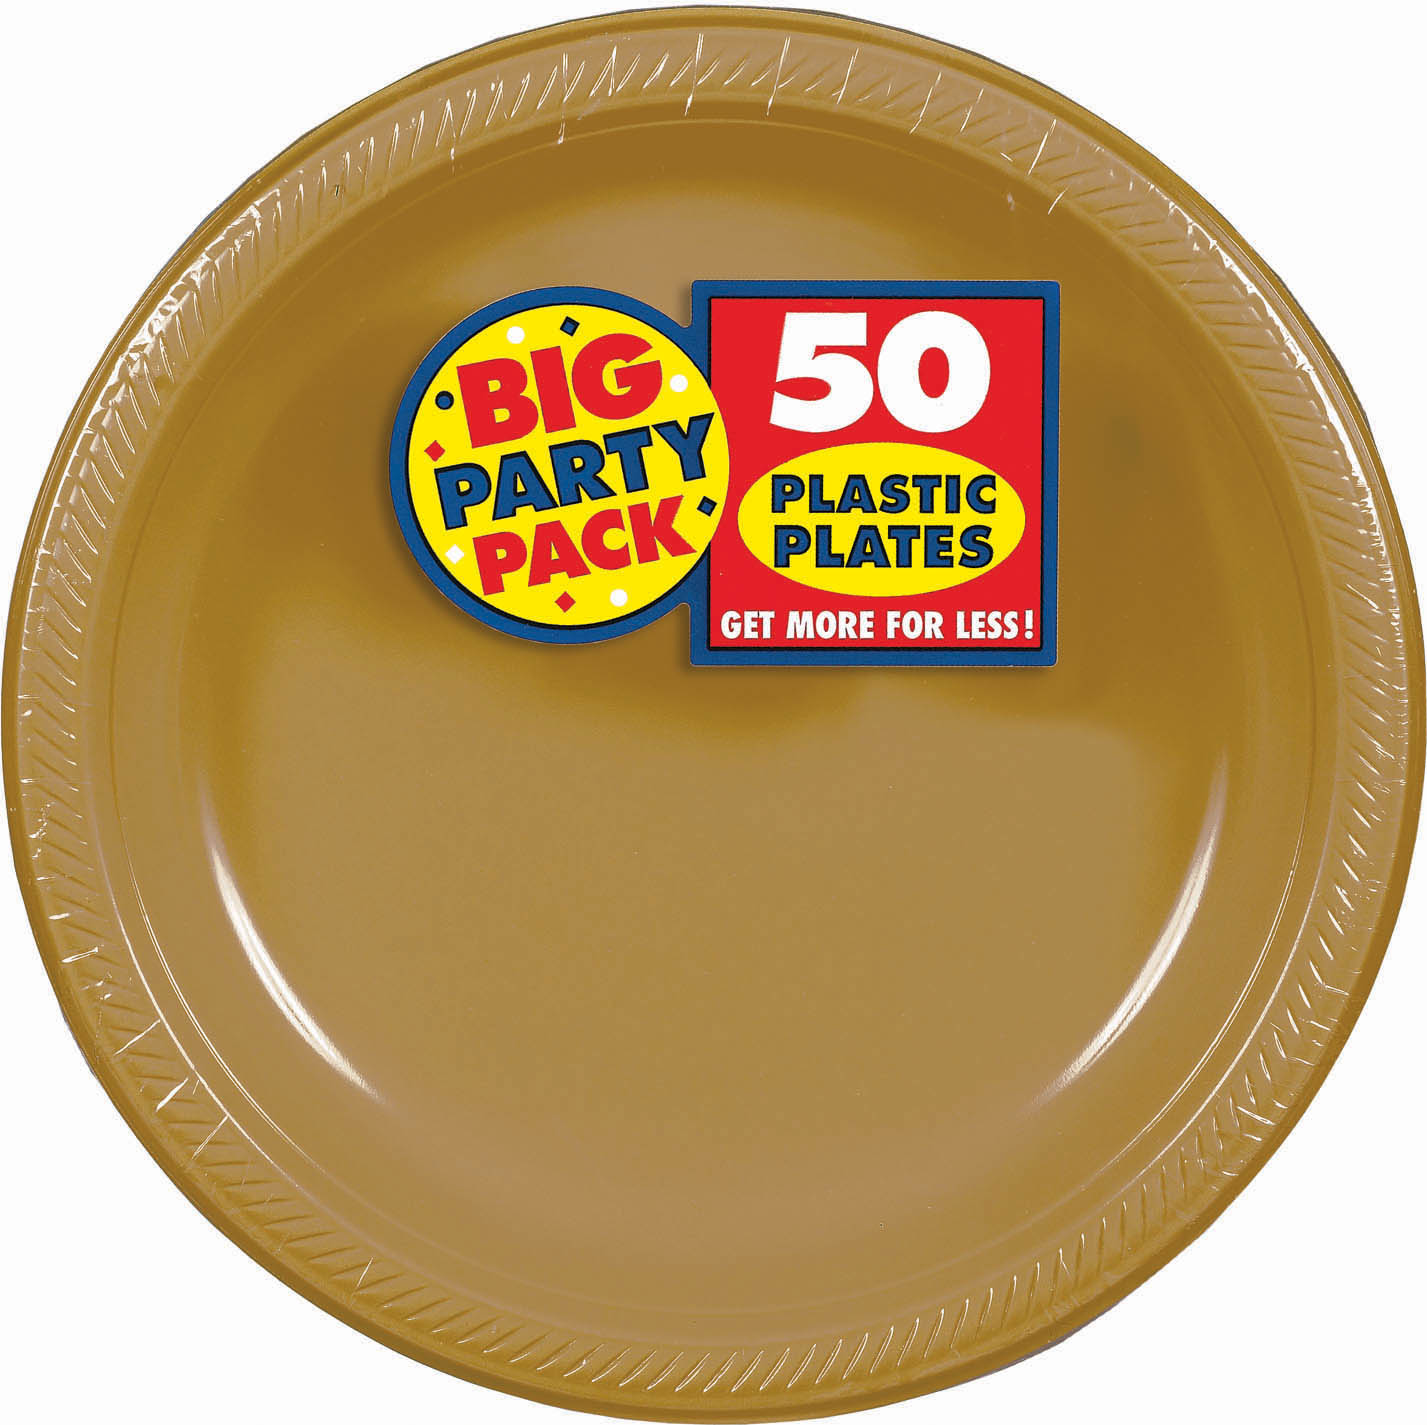 Big Party Pack 10 1/4 inch Plastic Plates- Gold